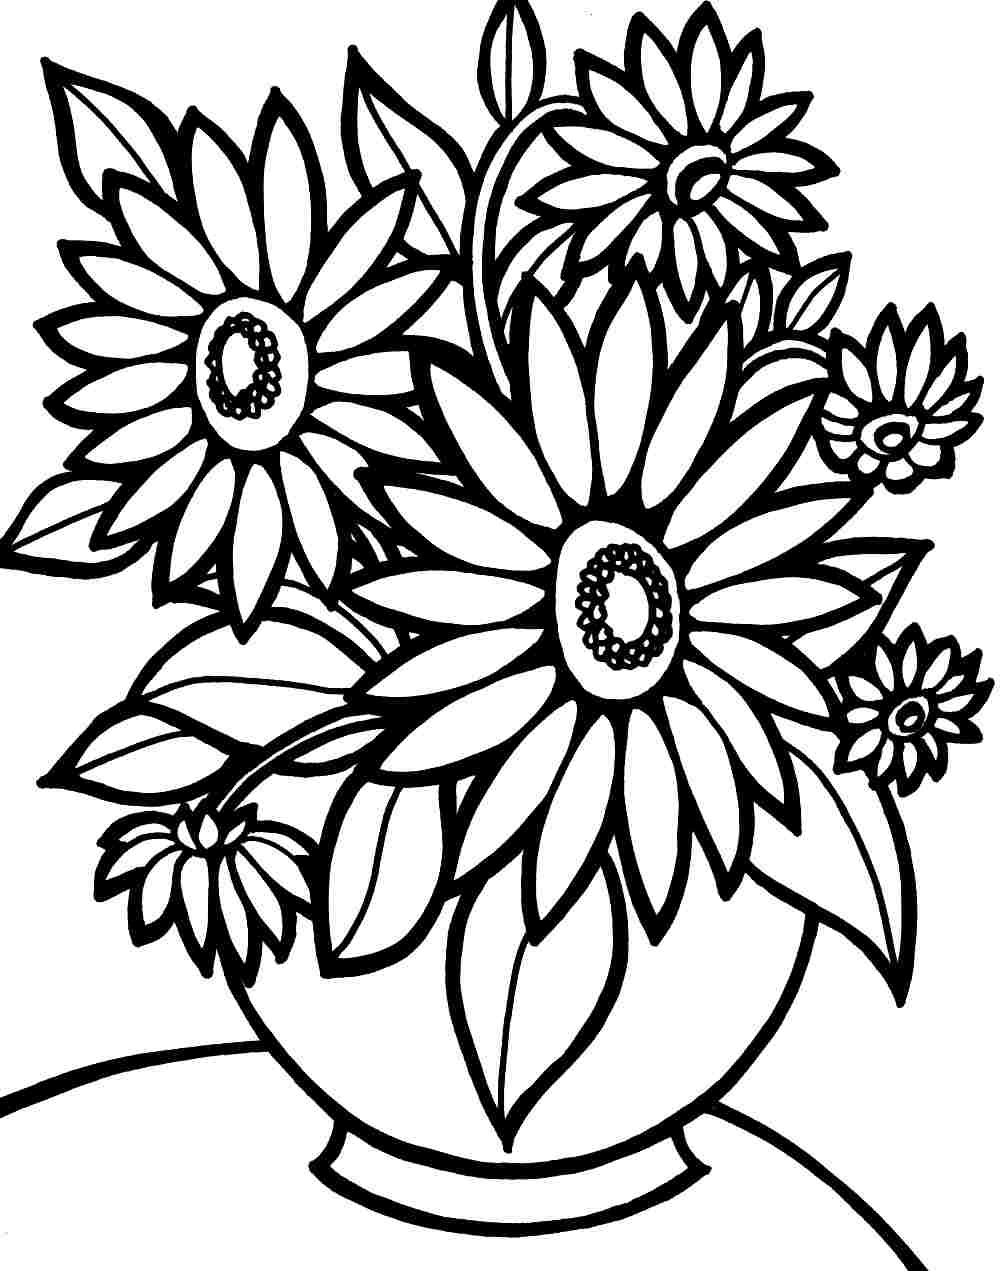 Flowers Coloring Pages Free Printable Printable Flower Coloring Pages For Girls 14 N Colouring Pages Photo